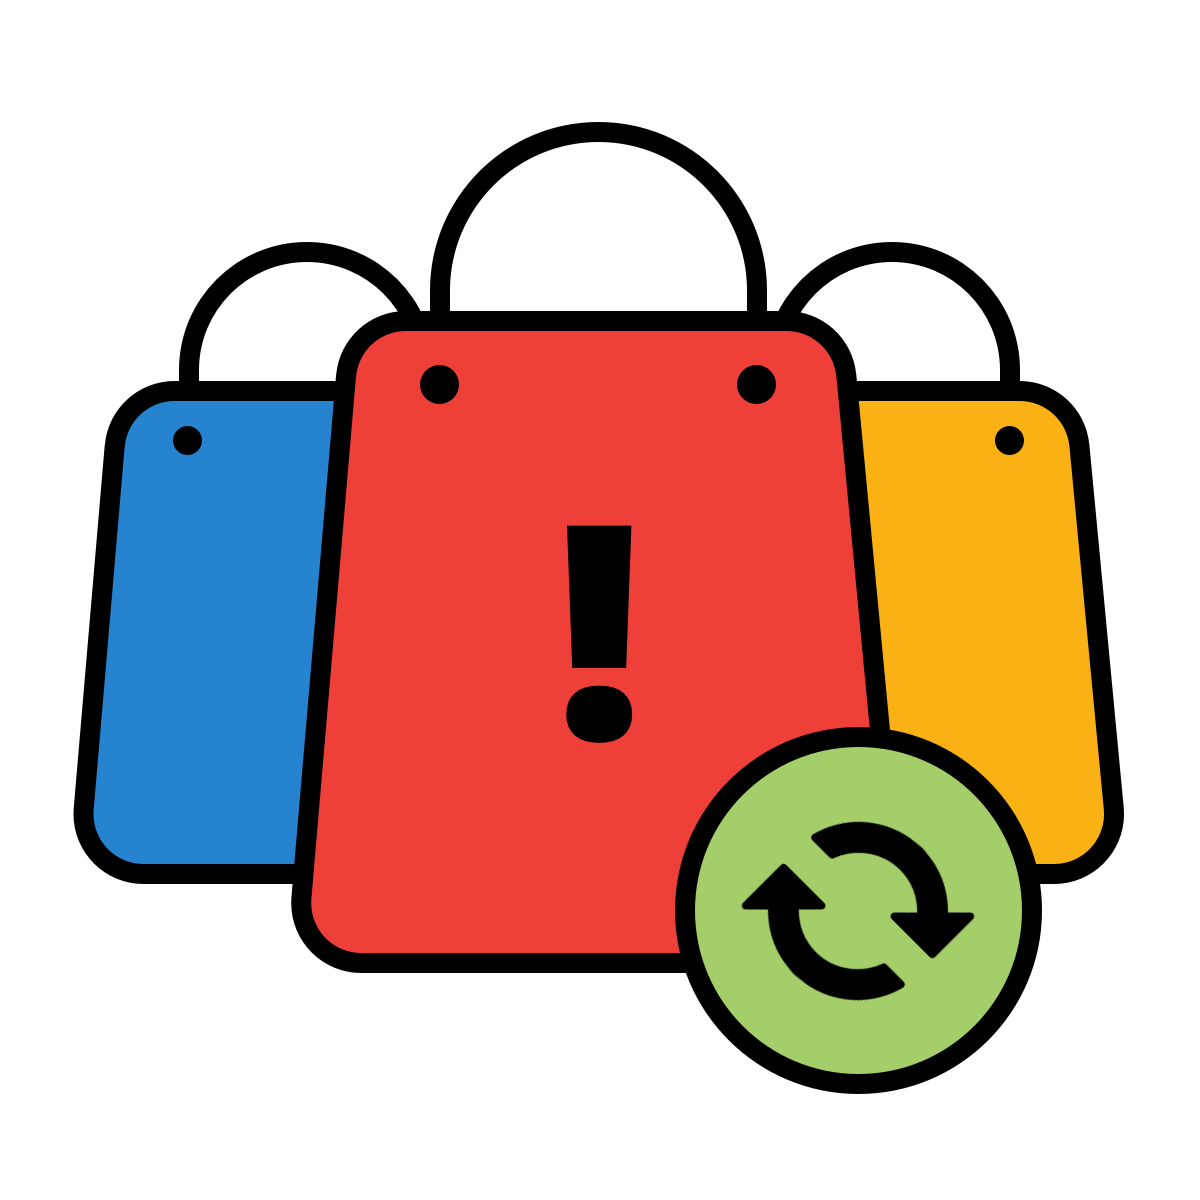 Hire Shopify Experts to integrate Abandoned Cart Email Recovery app into a Shopify store